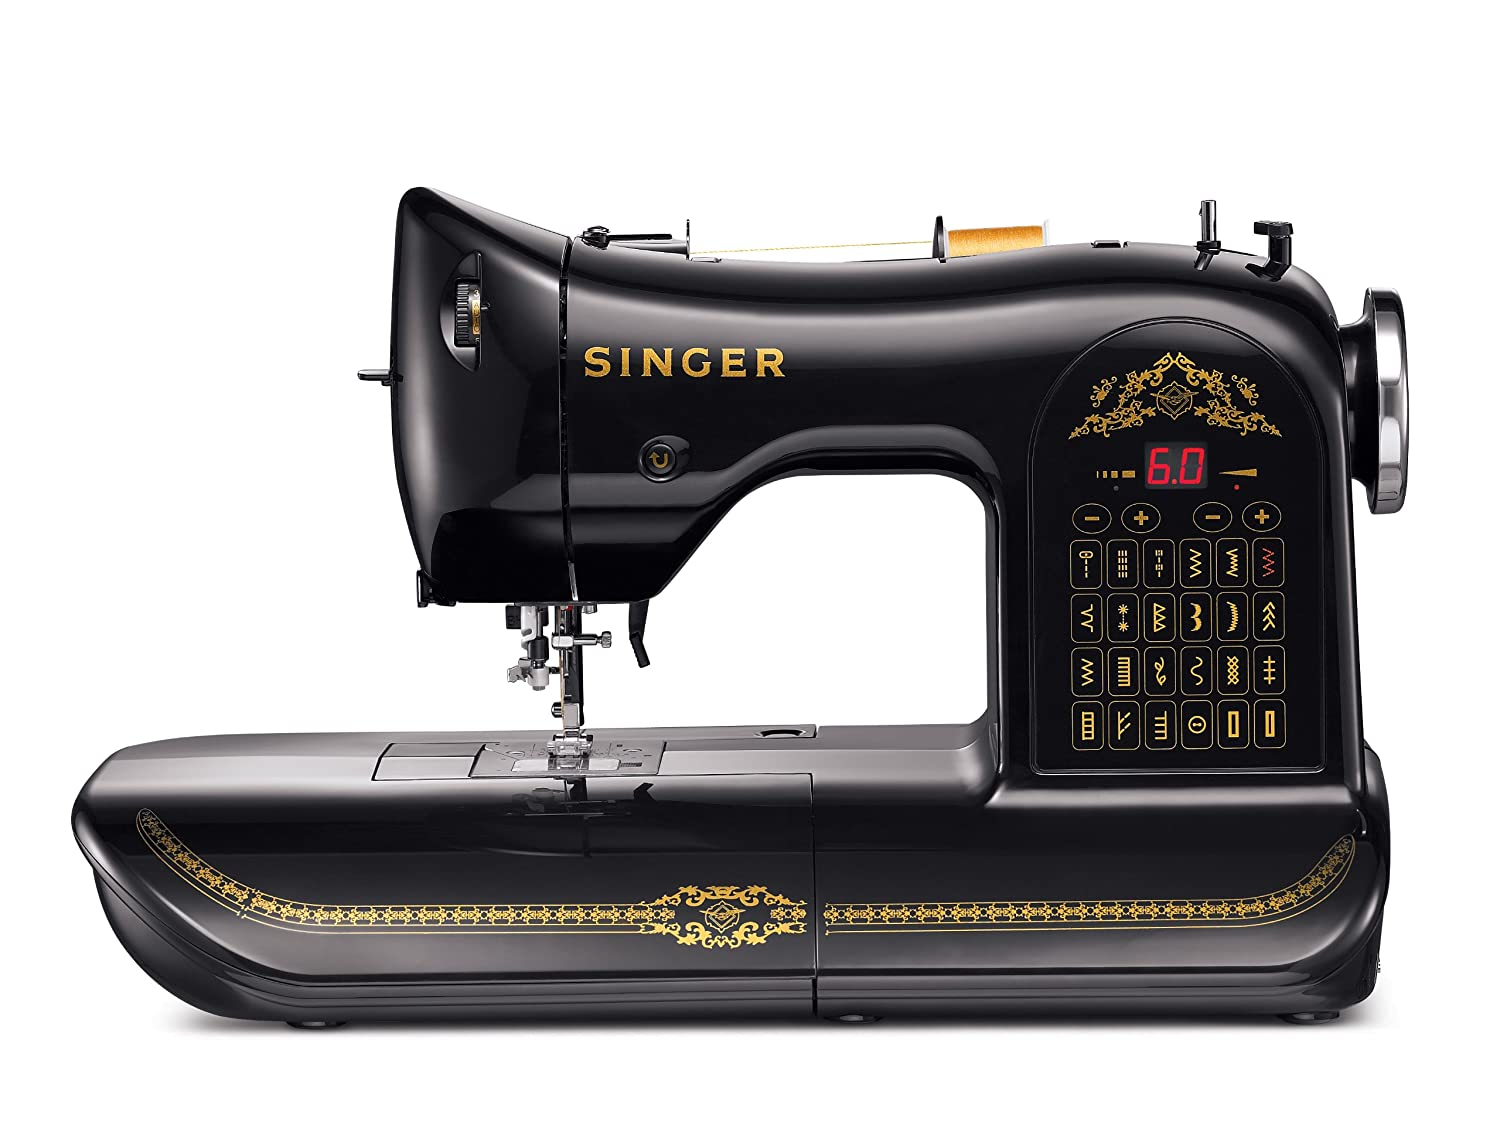 Image result for singer sewing machine